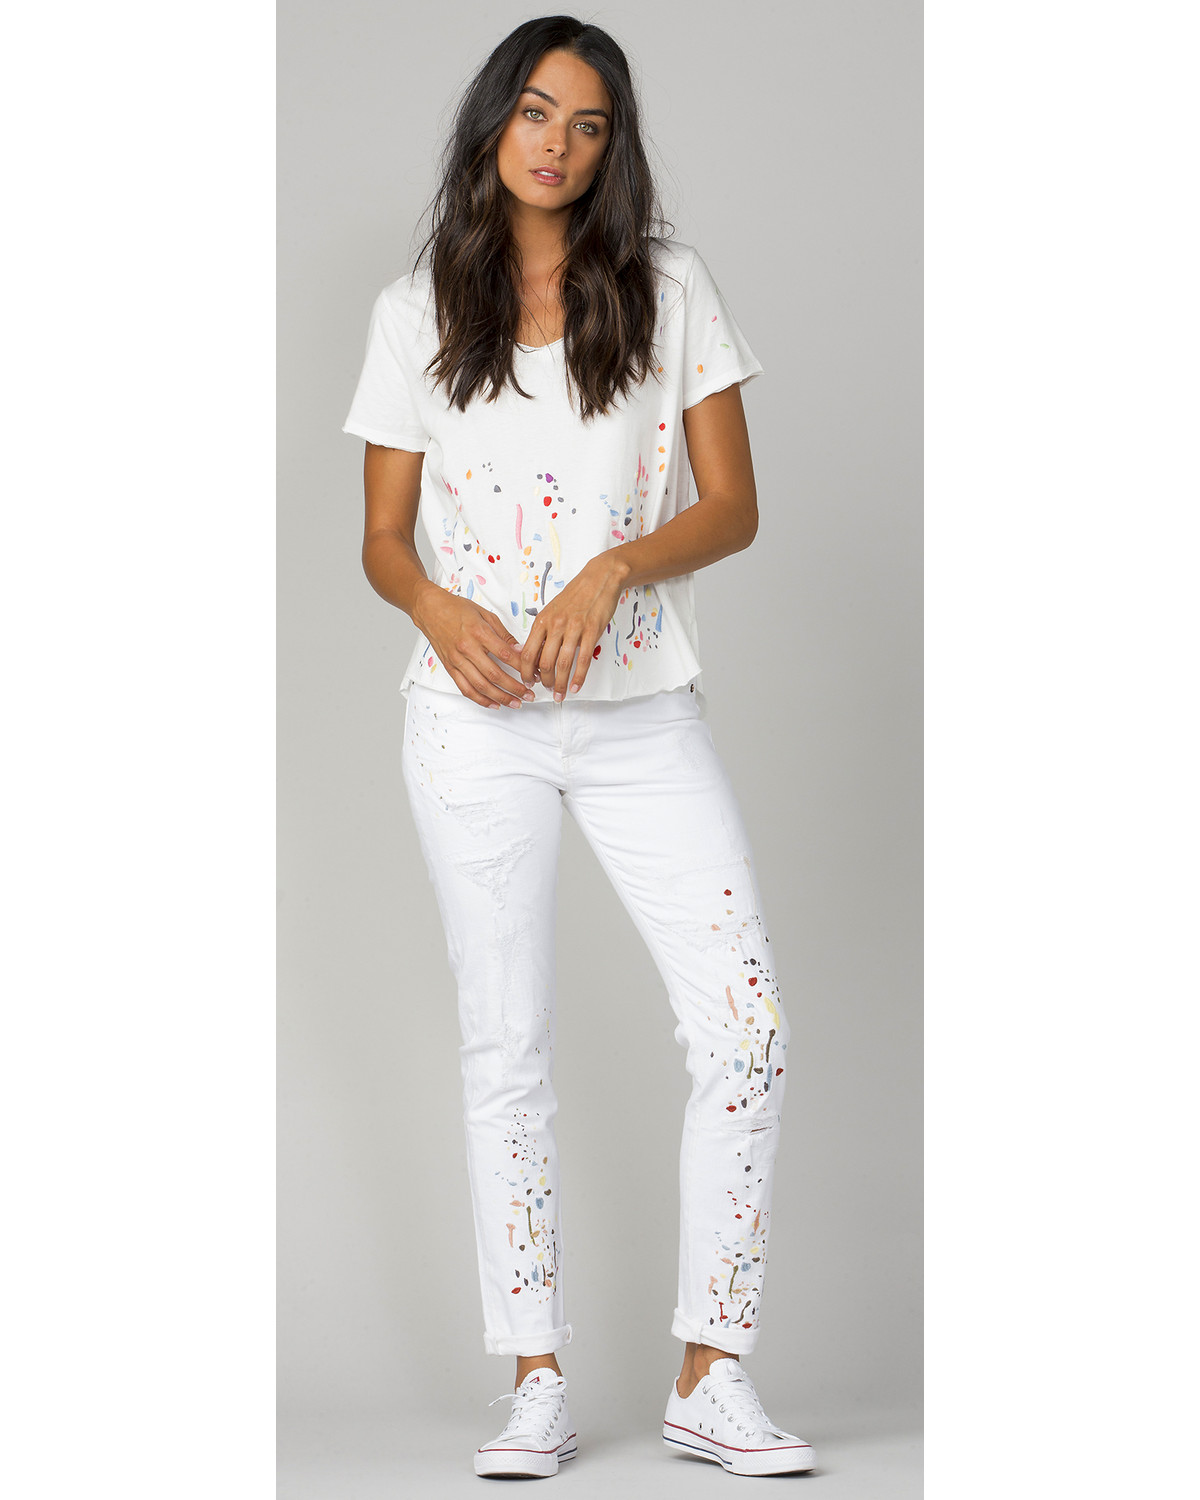 MM Vintage Women's White Paint Splatter Embroidered Boyfriend ...